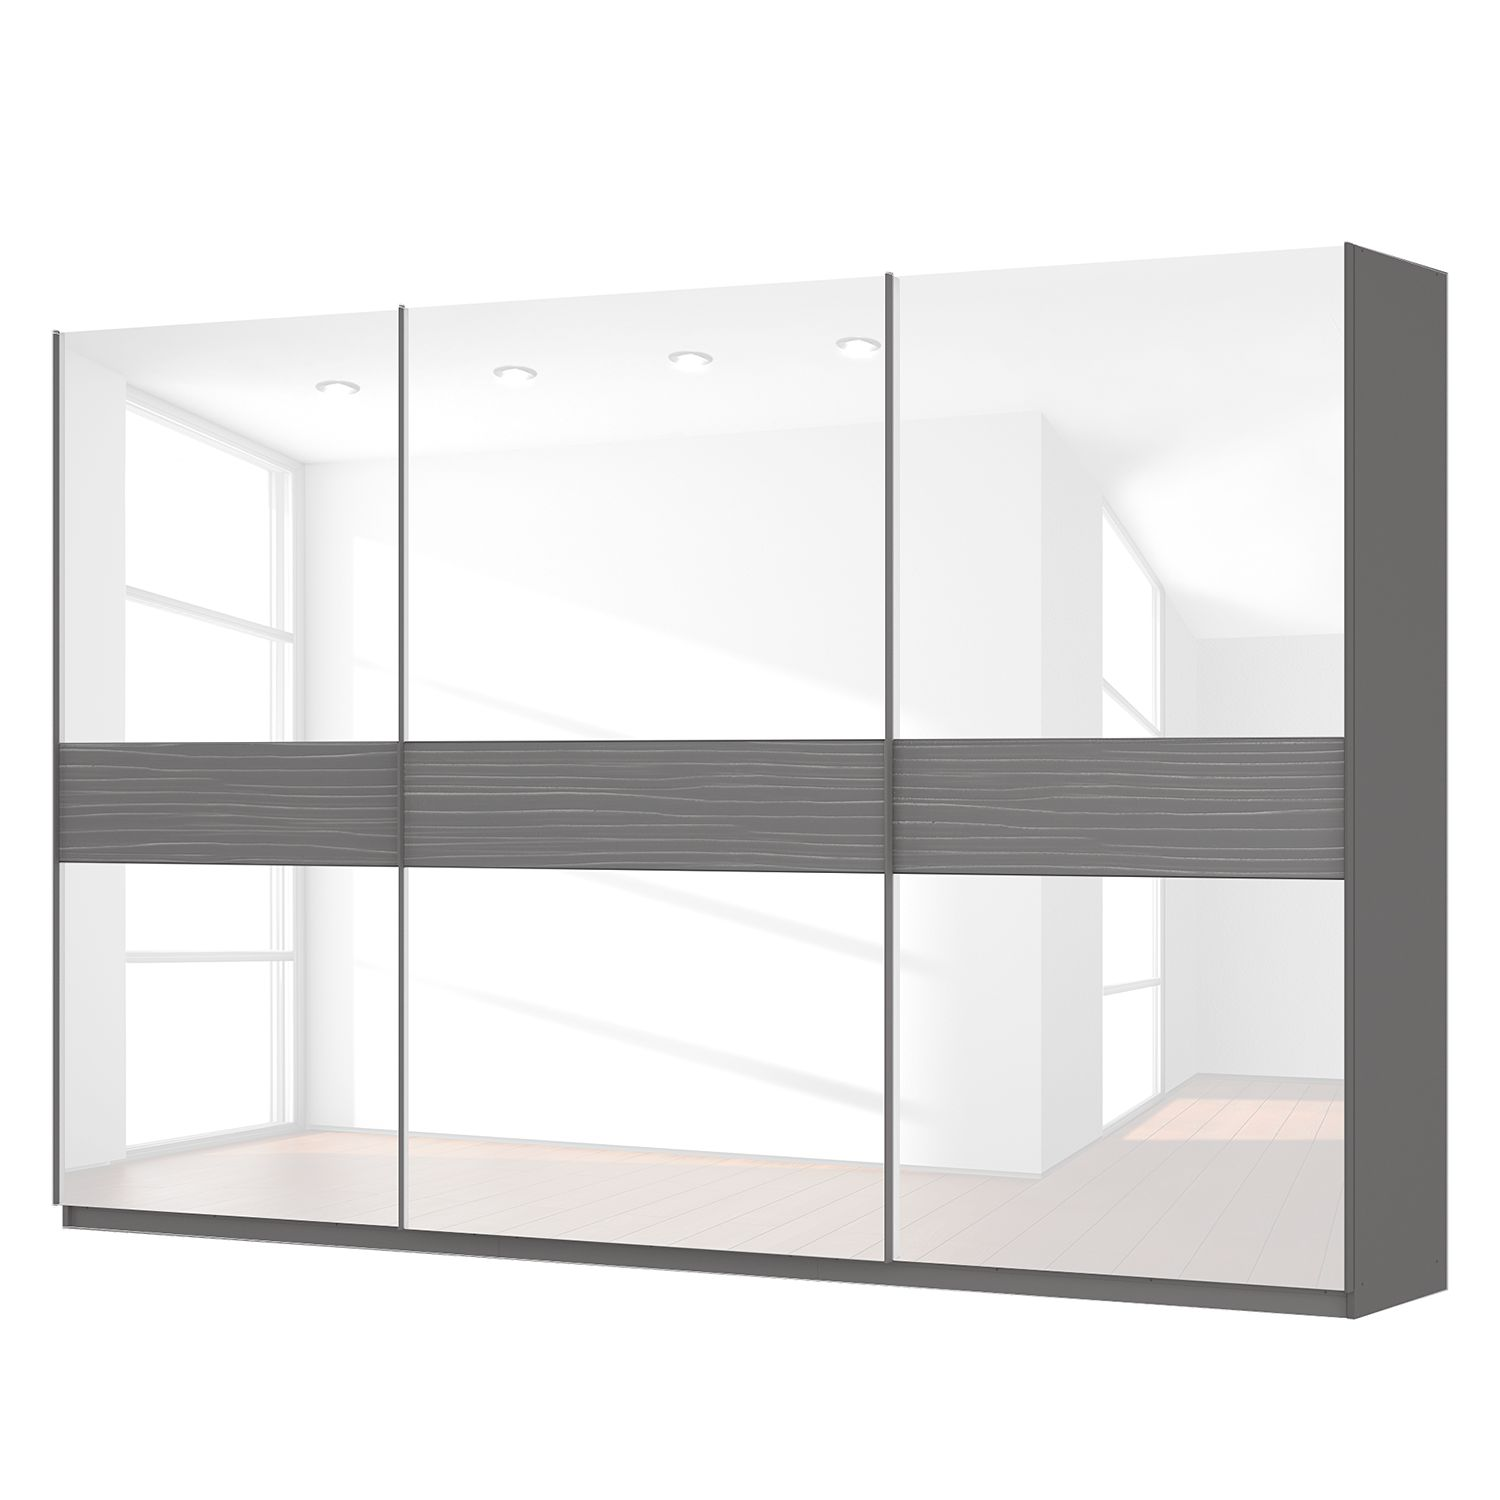 schwebet renschrank sk p graphit glas wei 360 cm 3 t rig 236 cm comfort sk p. Black Bedroom Furniture Sets. Home Design Ideas